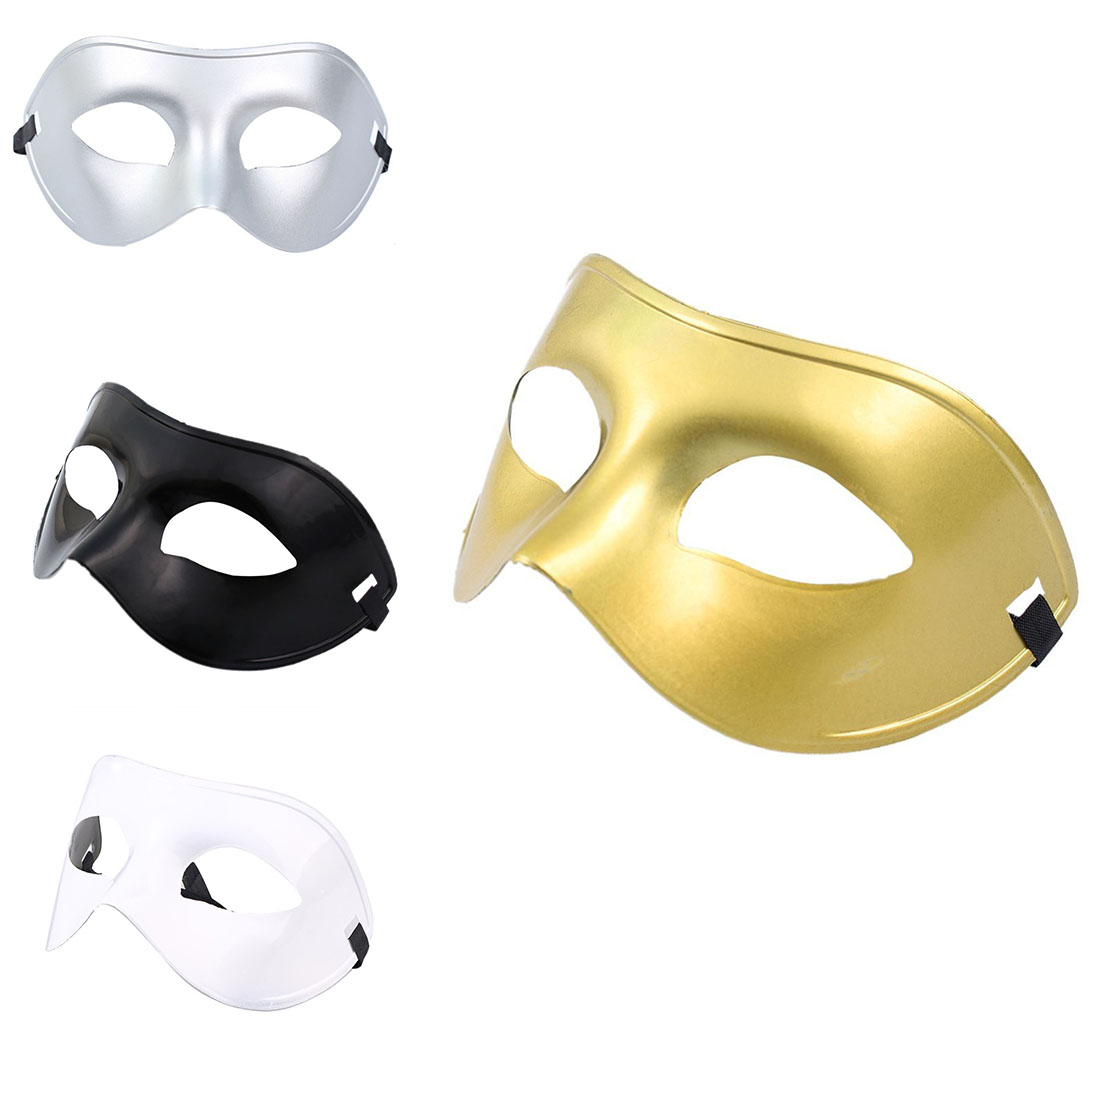 Fancy Dress Costume <font><b>Sexy</b></font> Men Women Costume Prom <font><b>Mask</b></font> Venetian Mardi Gras Party Dance Masquerade Ball <font><b>Halloween</b></font> Carnaval <font><b>Mask</b></font> image